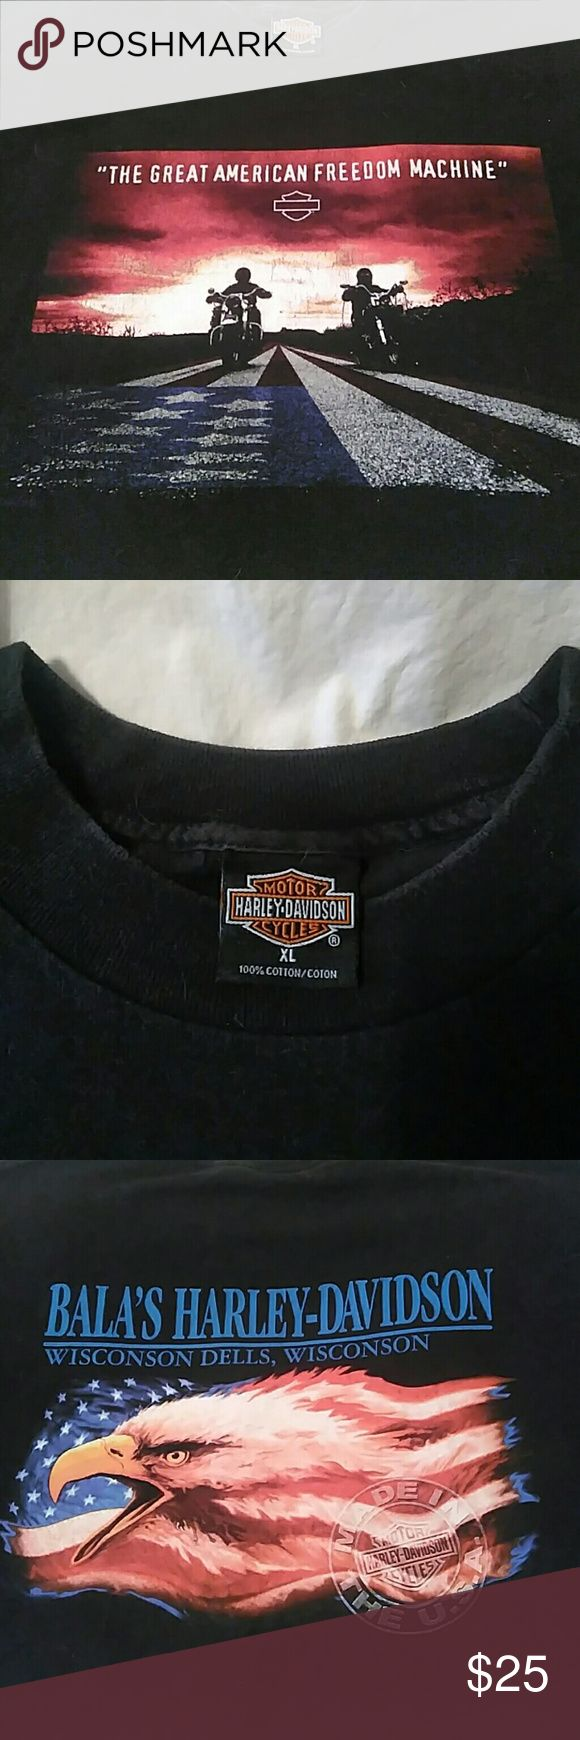 Harley Davidson T-shirt 1997 XL 1997 Harley t-shirt from Bala's, Wisconsin Dells.  Gently used condition, size XL. Harley-Davidson Shirts Tees - Short Sleeve